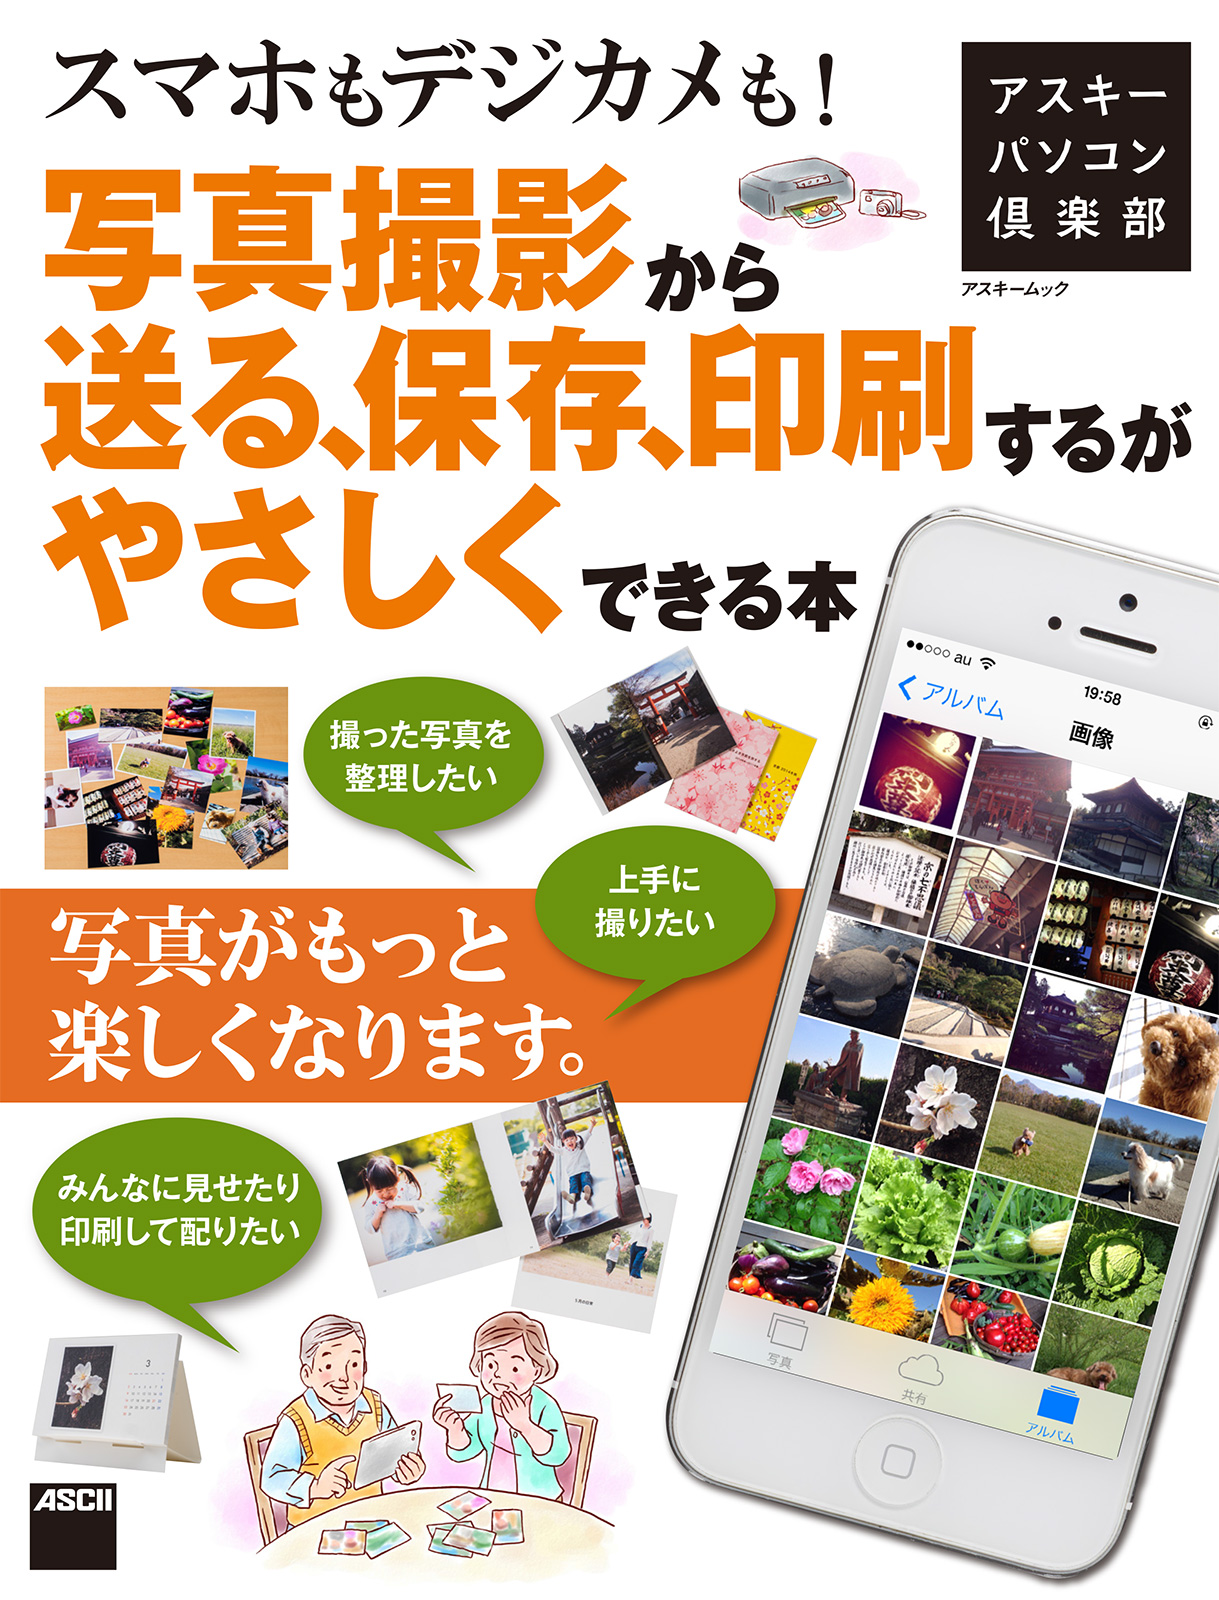 """Ascii"" published an article about GIZMON SMART CLIP."